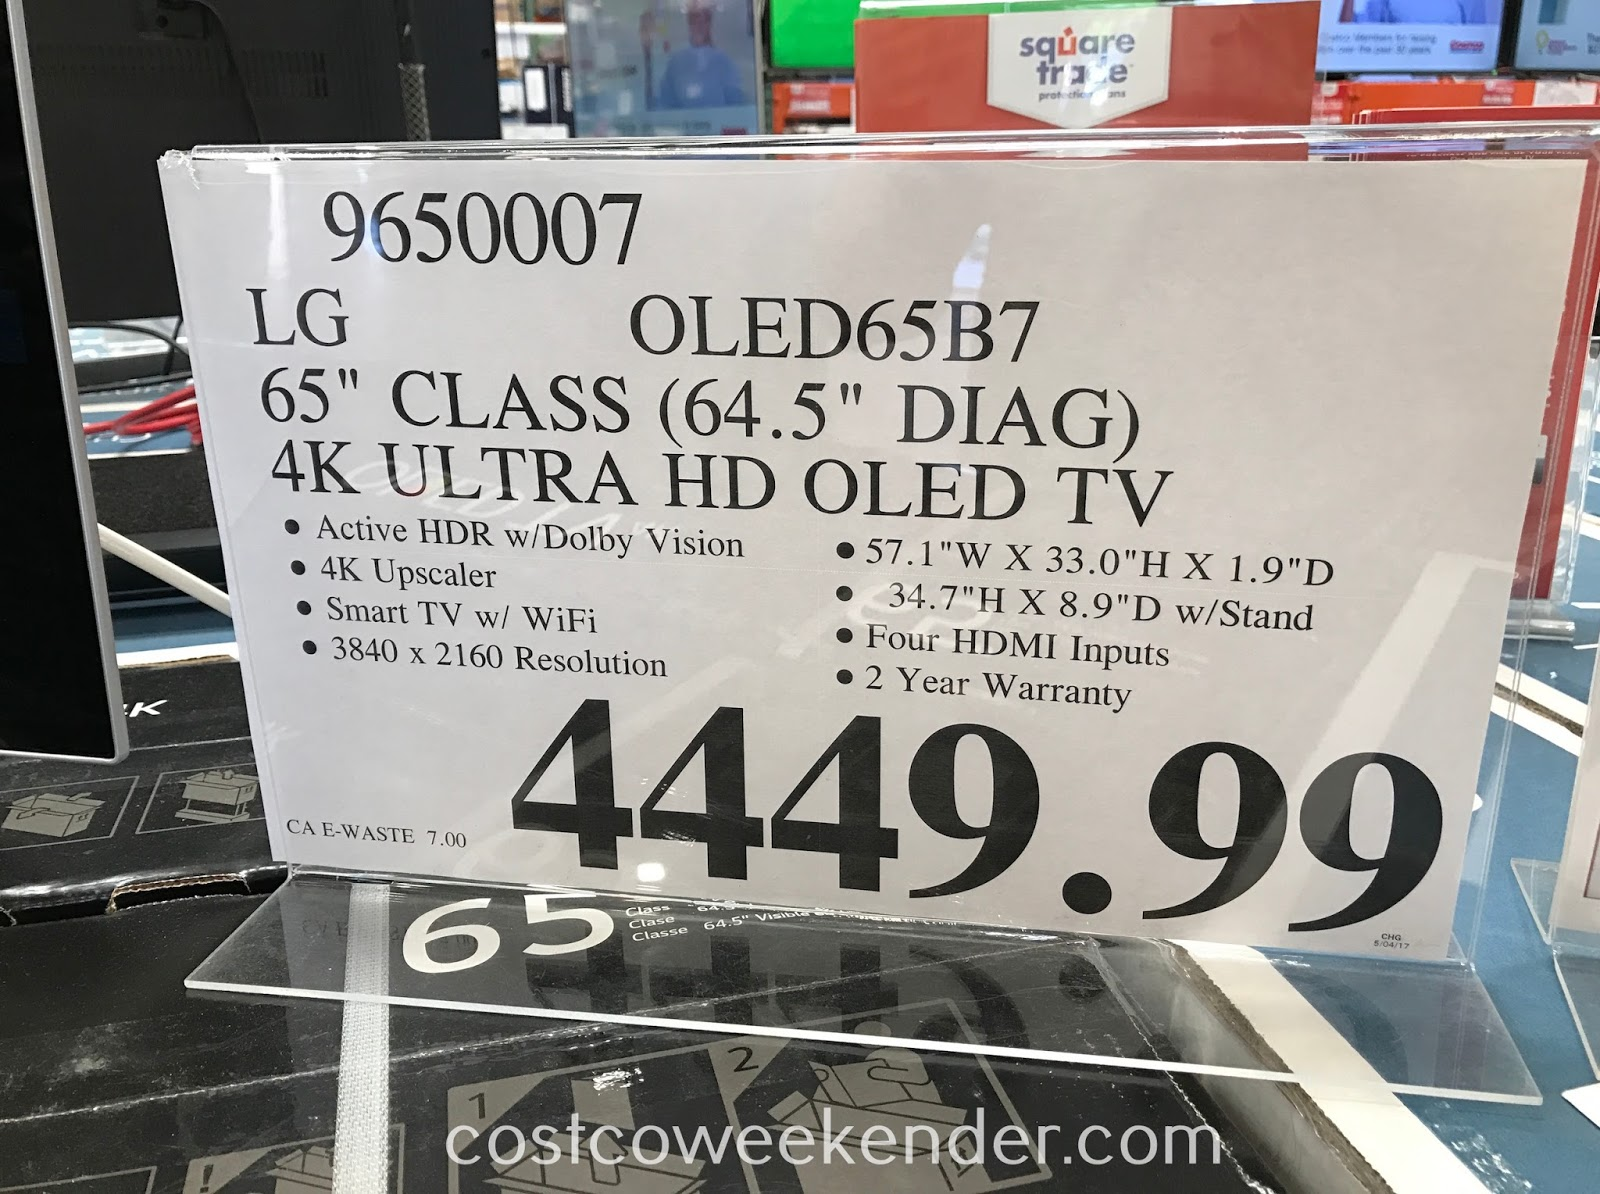 Deal for the LG OLED65B7 65-inch 4K Ultra OLED TV at Costco